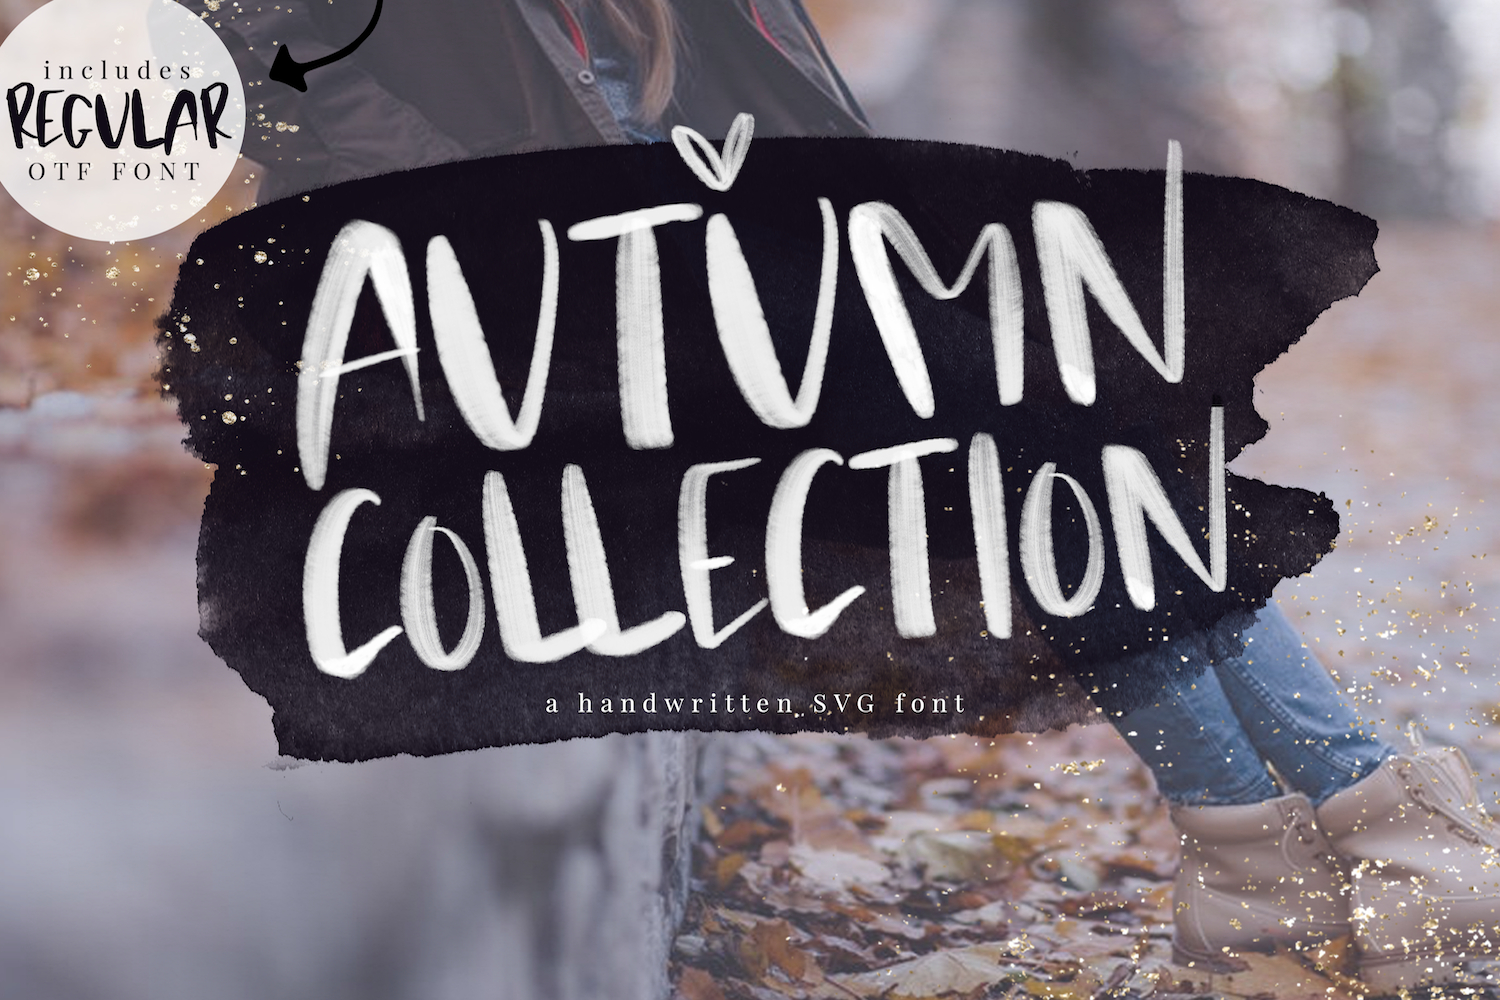 Autumn Collection Otf & Svg Font (140143) | Regular | Font in Agp Font Awesome Collection